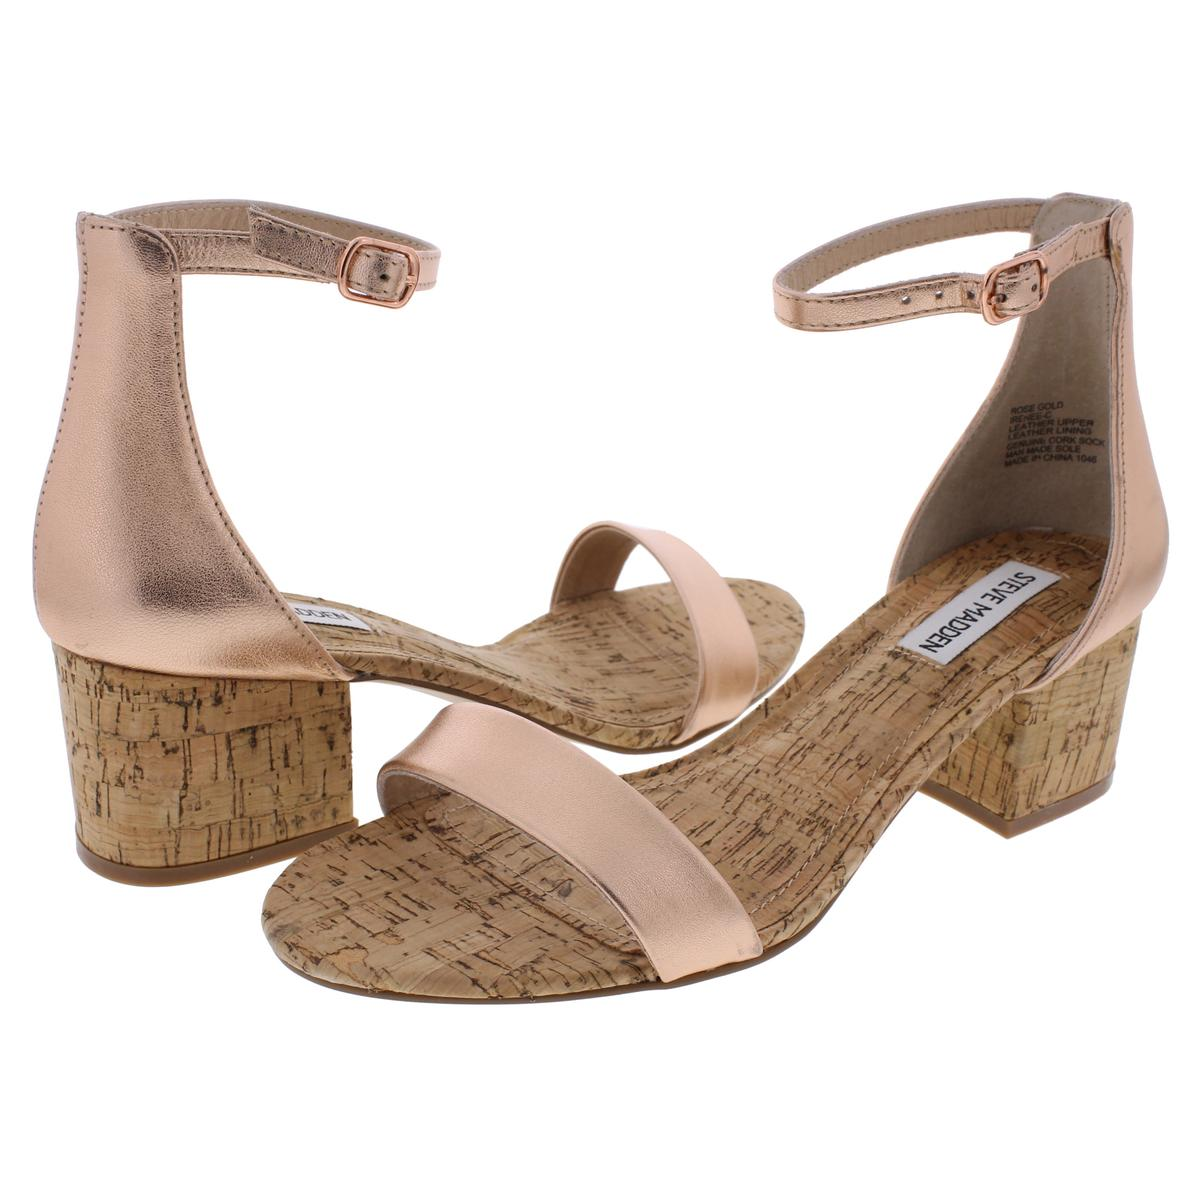 Steve-Madden-Womens-Irenee-Dress-Sandals-Heels-BHFO-0810 thumbnail 17